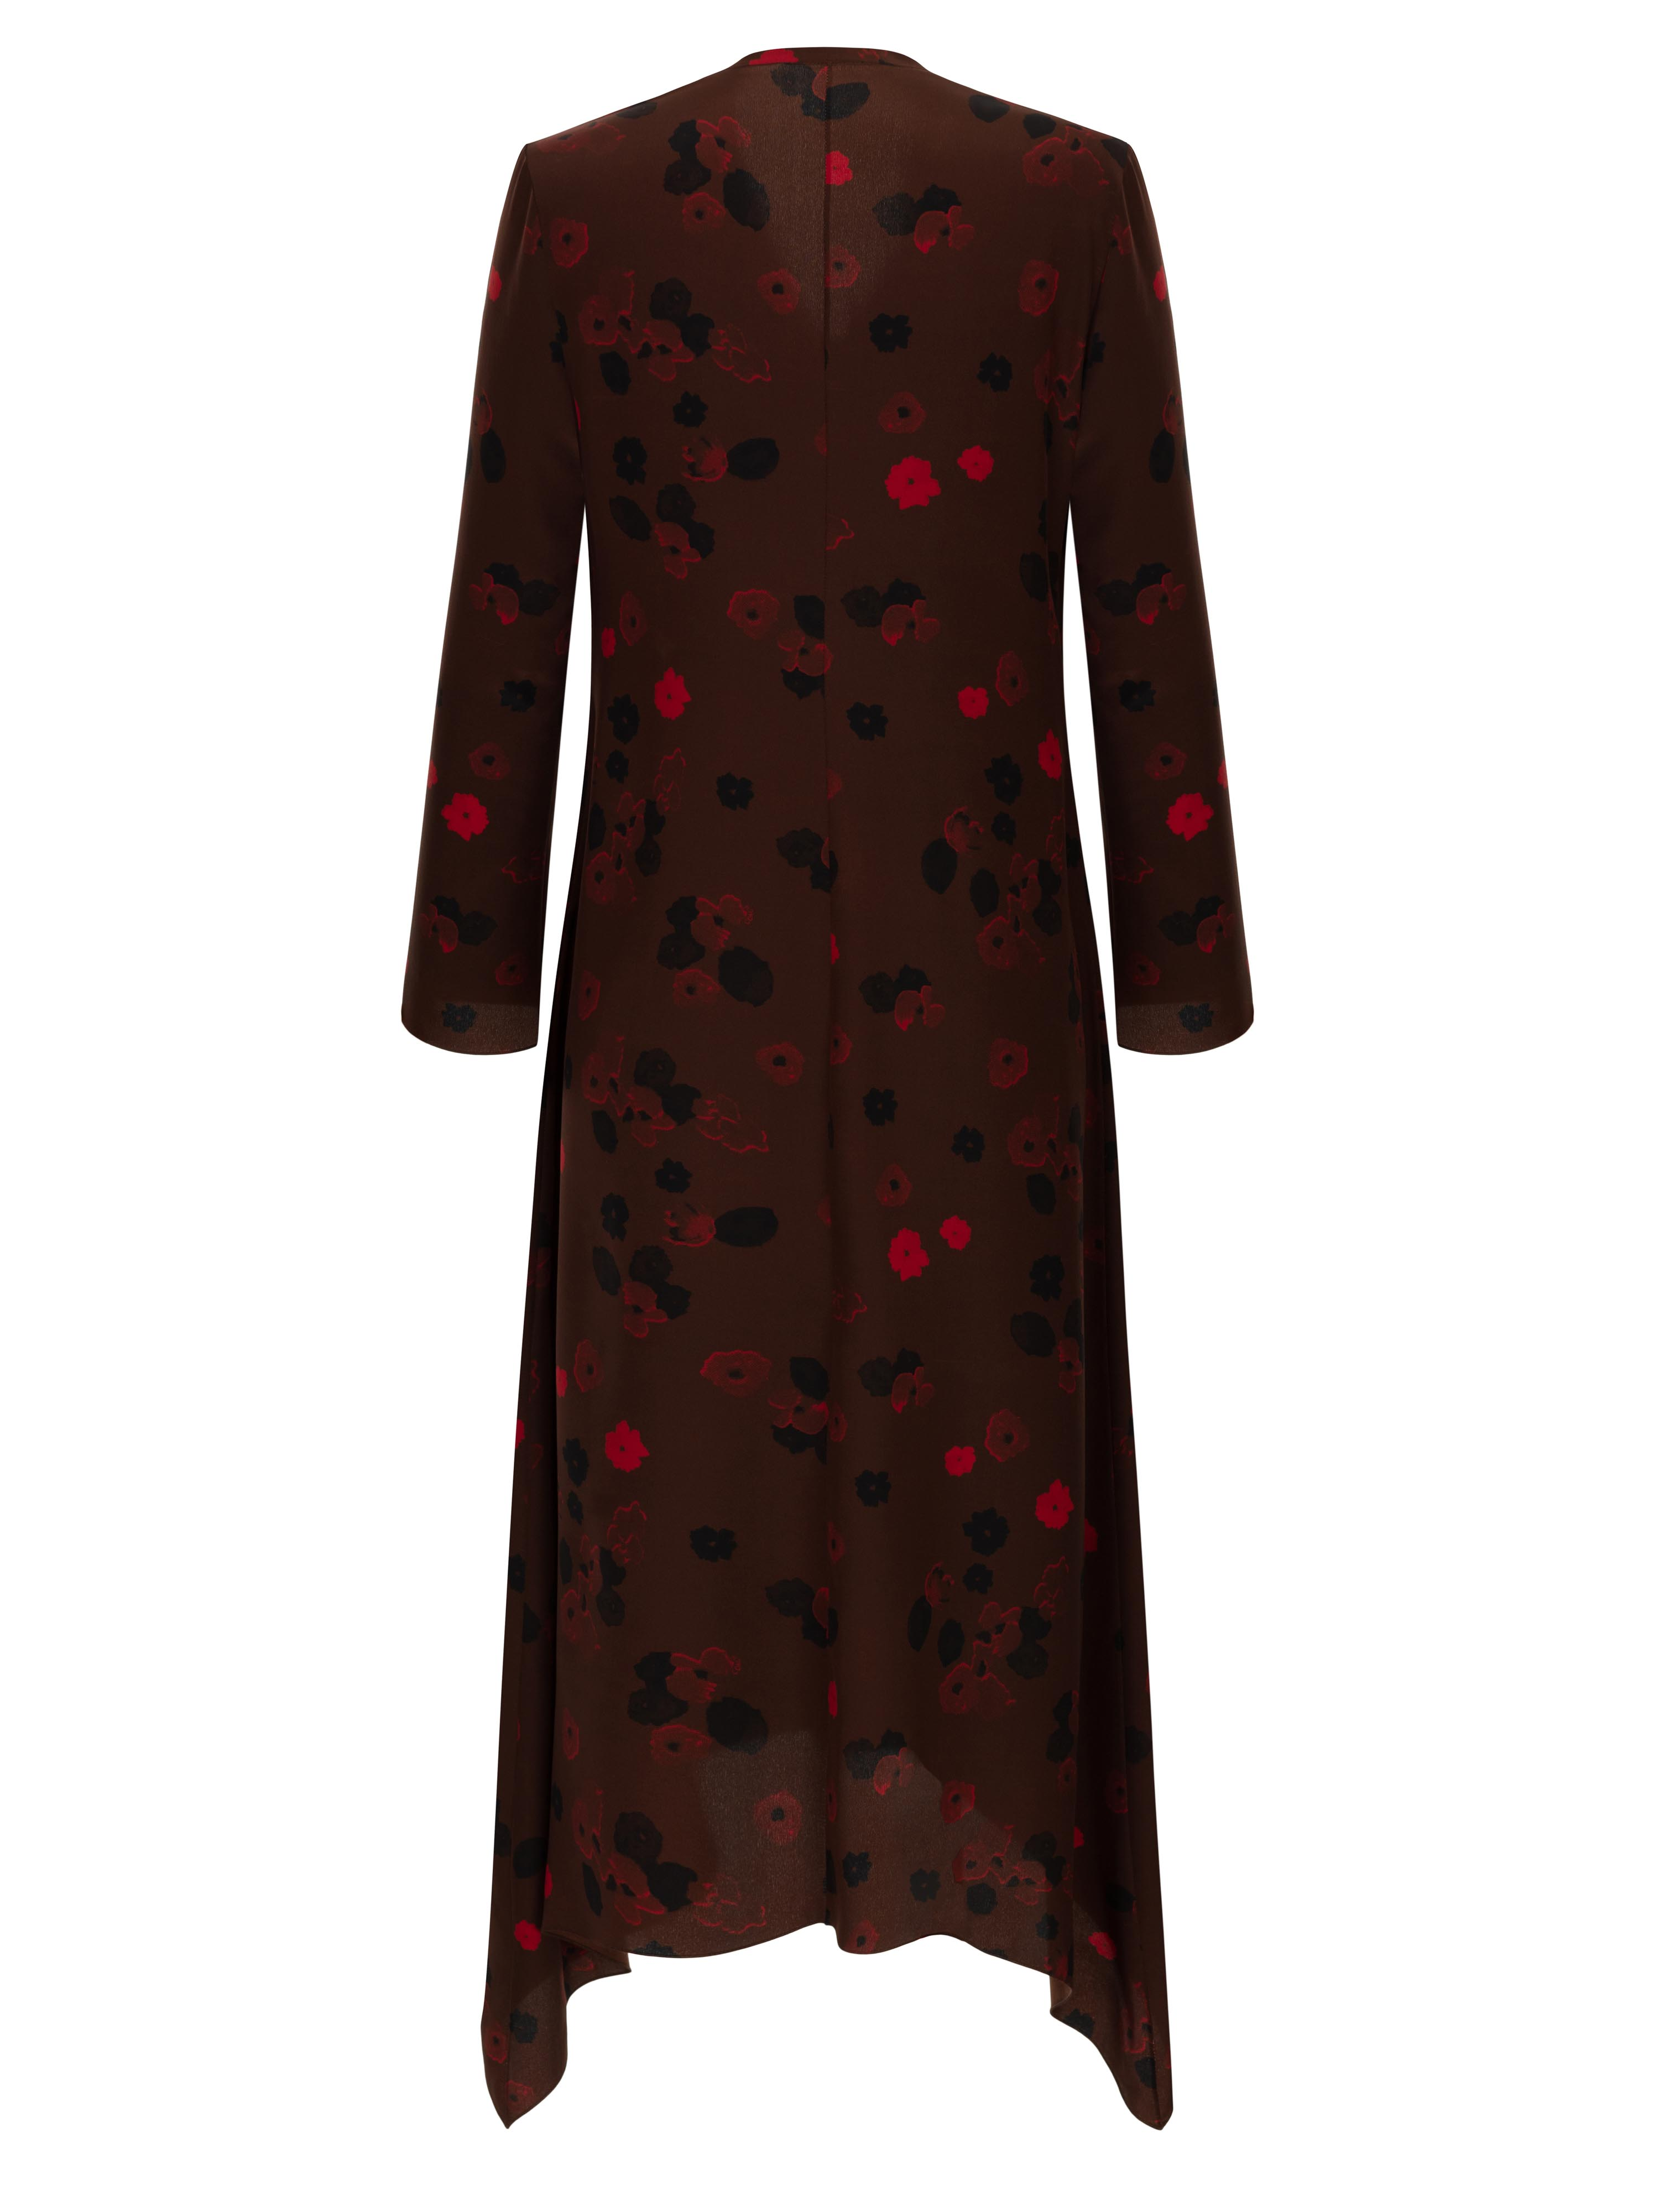 LILY AUTUMN LEAVES DRESS